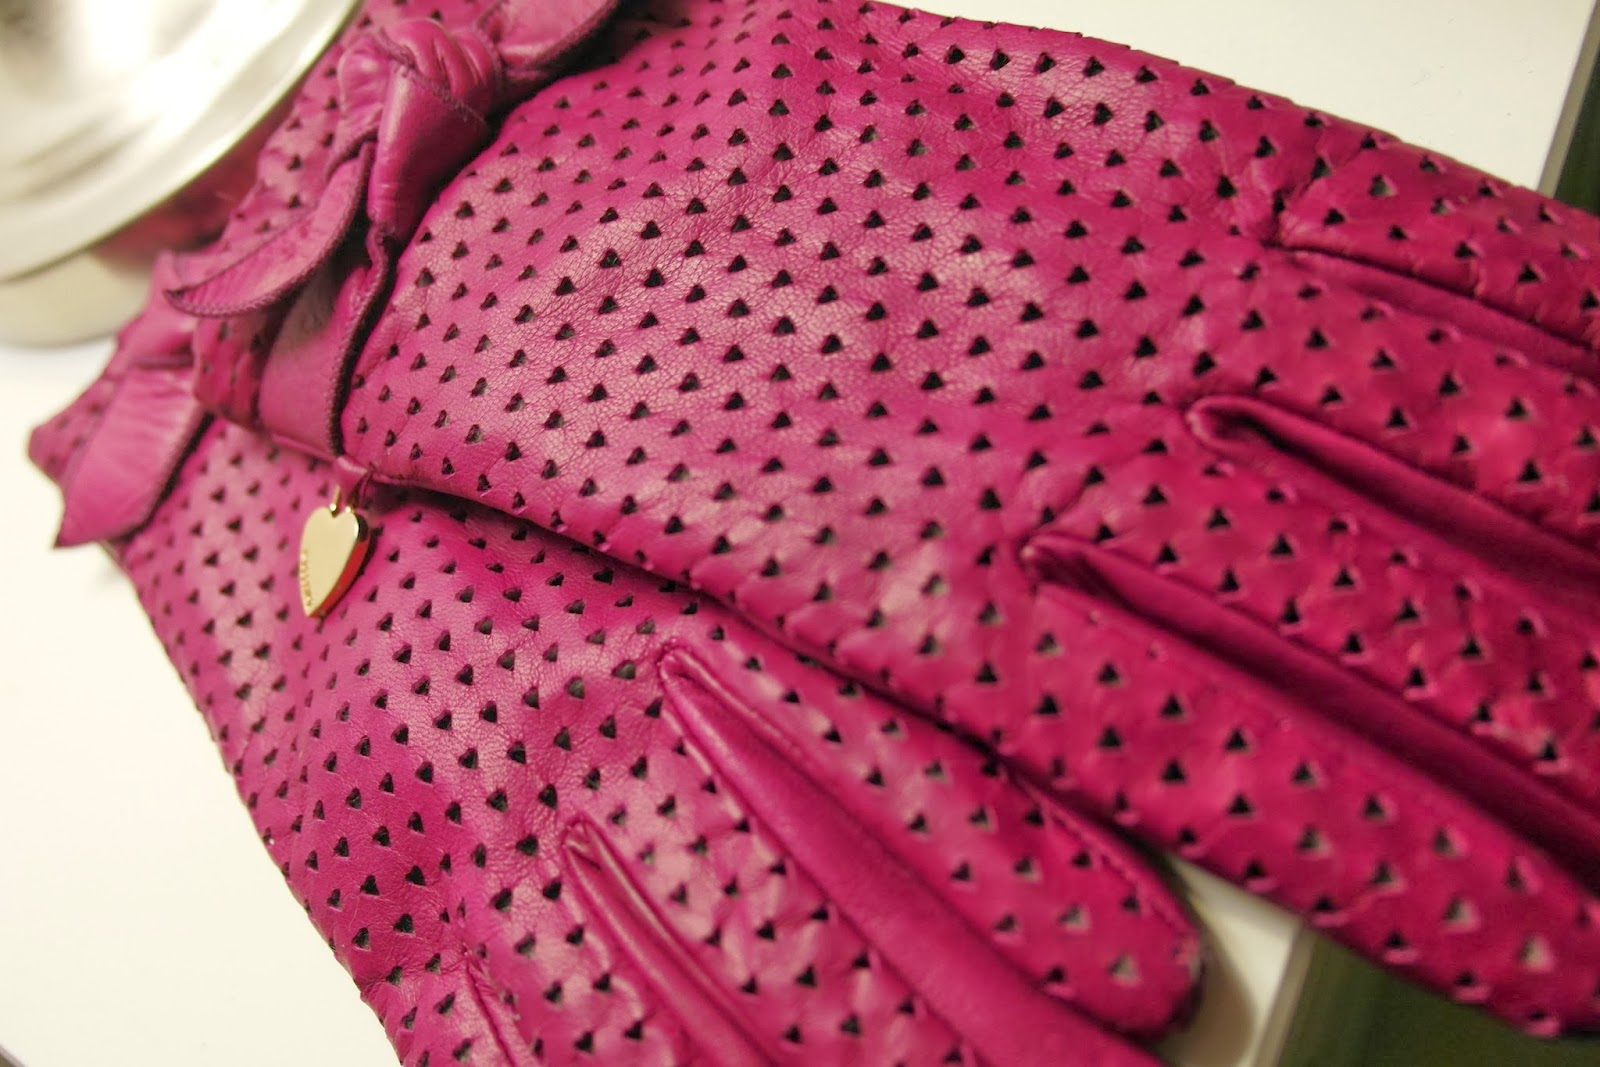 Moschino pink gloves